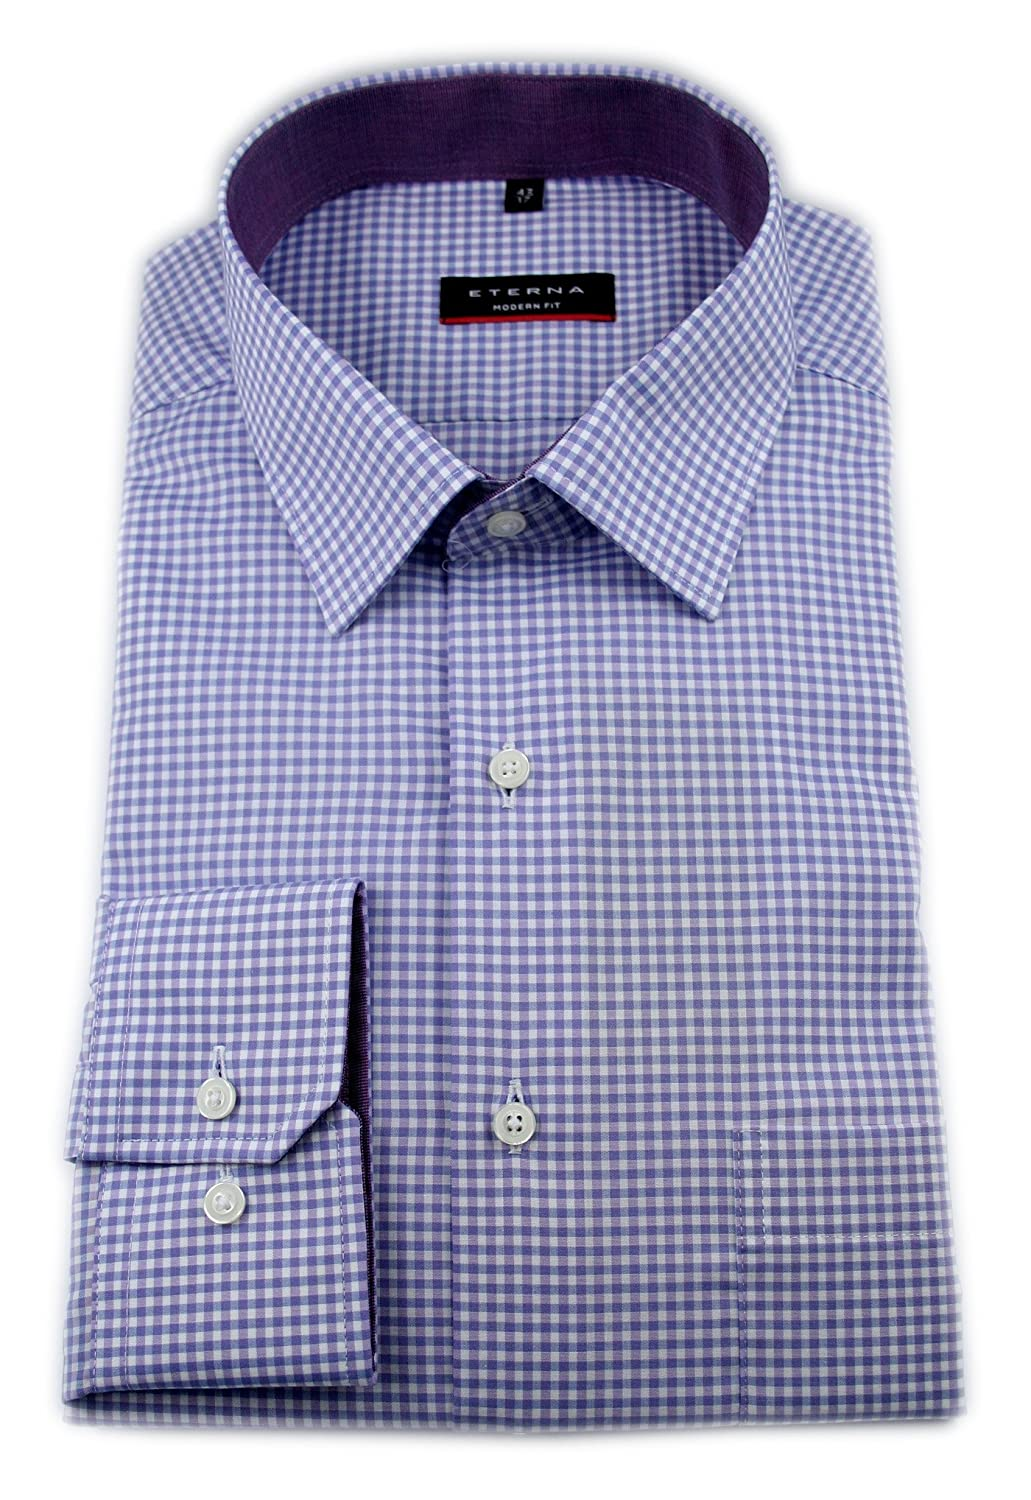 Eterna Long Sleeve Shirt Modern Fit Poplin Checked